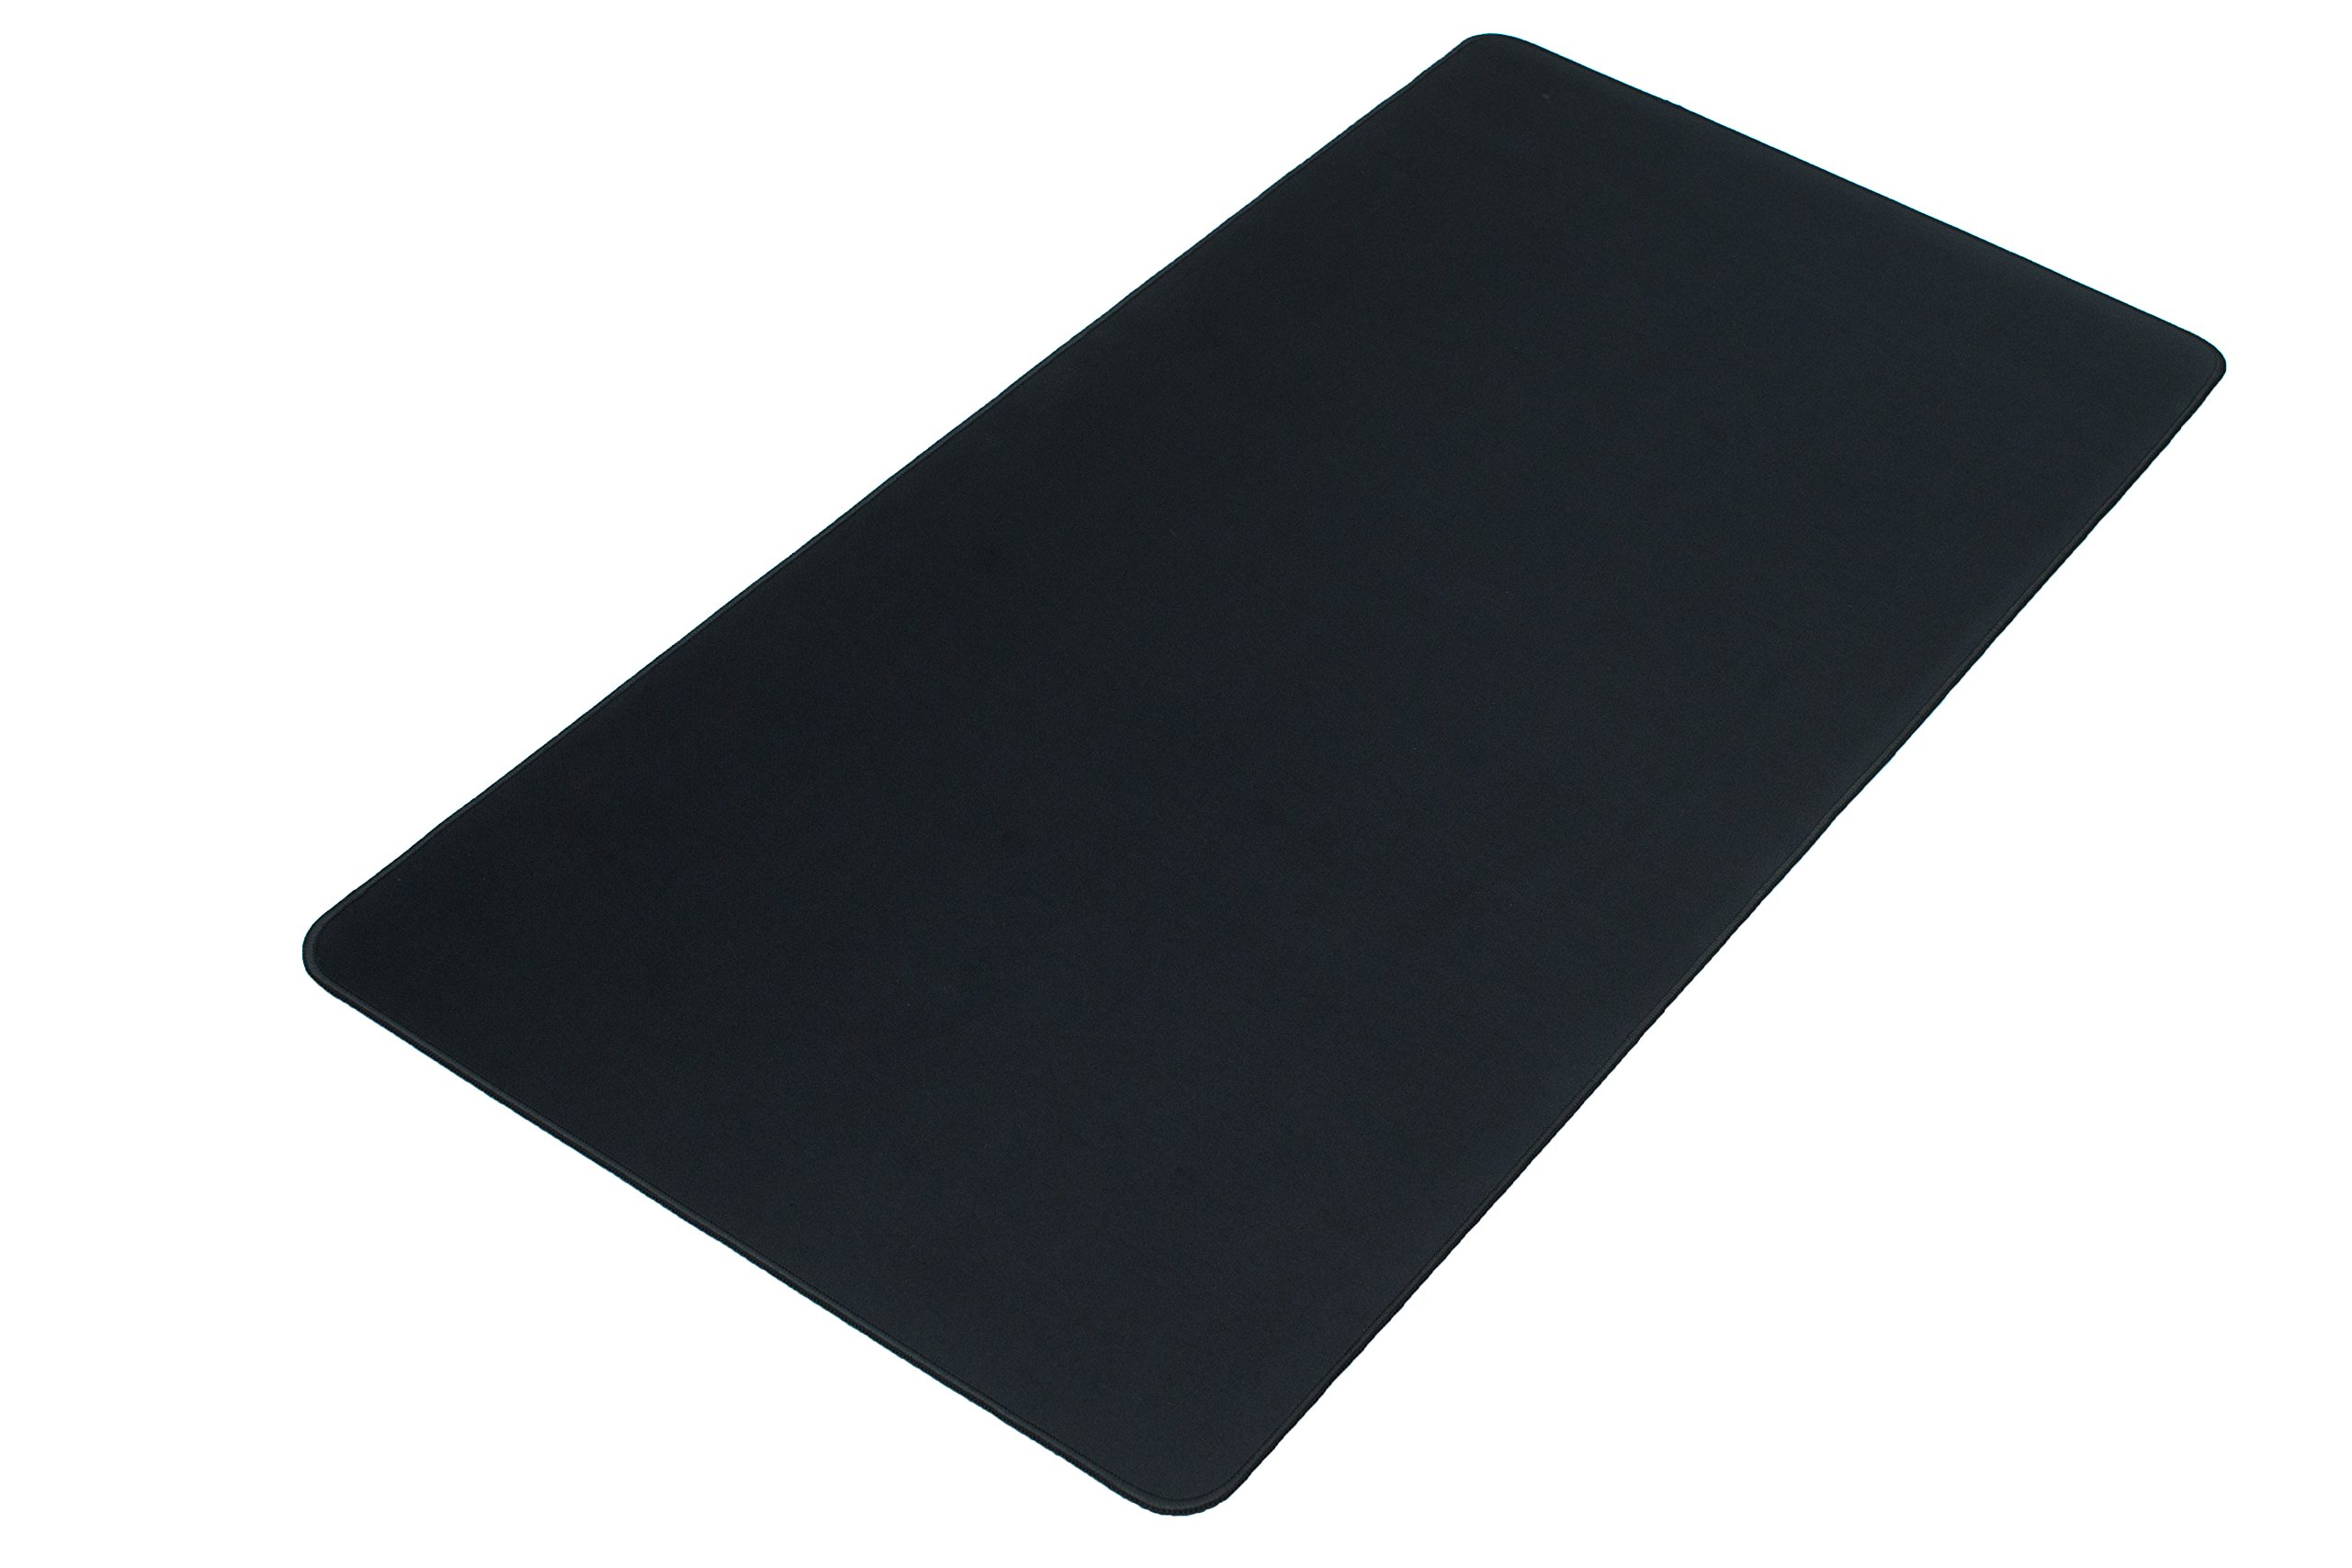 Black XXL Extended Gaming Mouse Mat/Pad - Large, Wide (Long) Mouse Pad, Stitched Edges, Speed Silky Smooth Surface - 36''x18''x0.12''